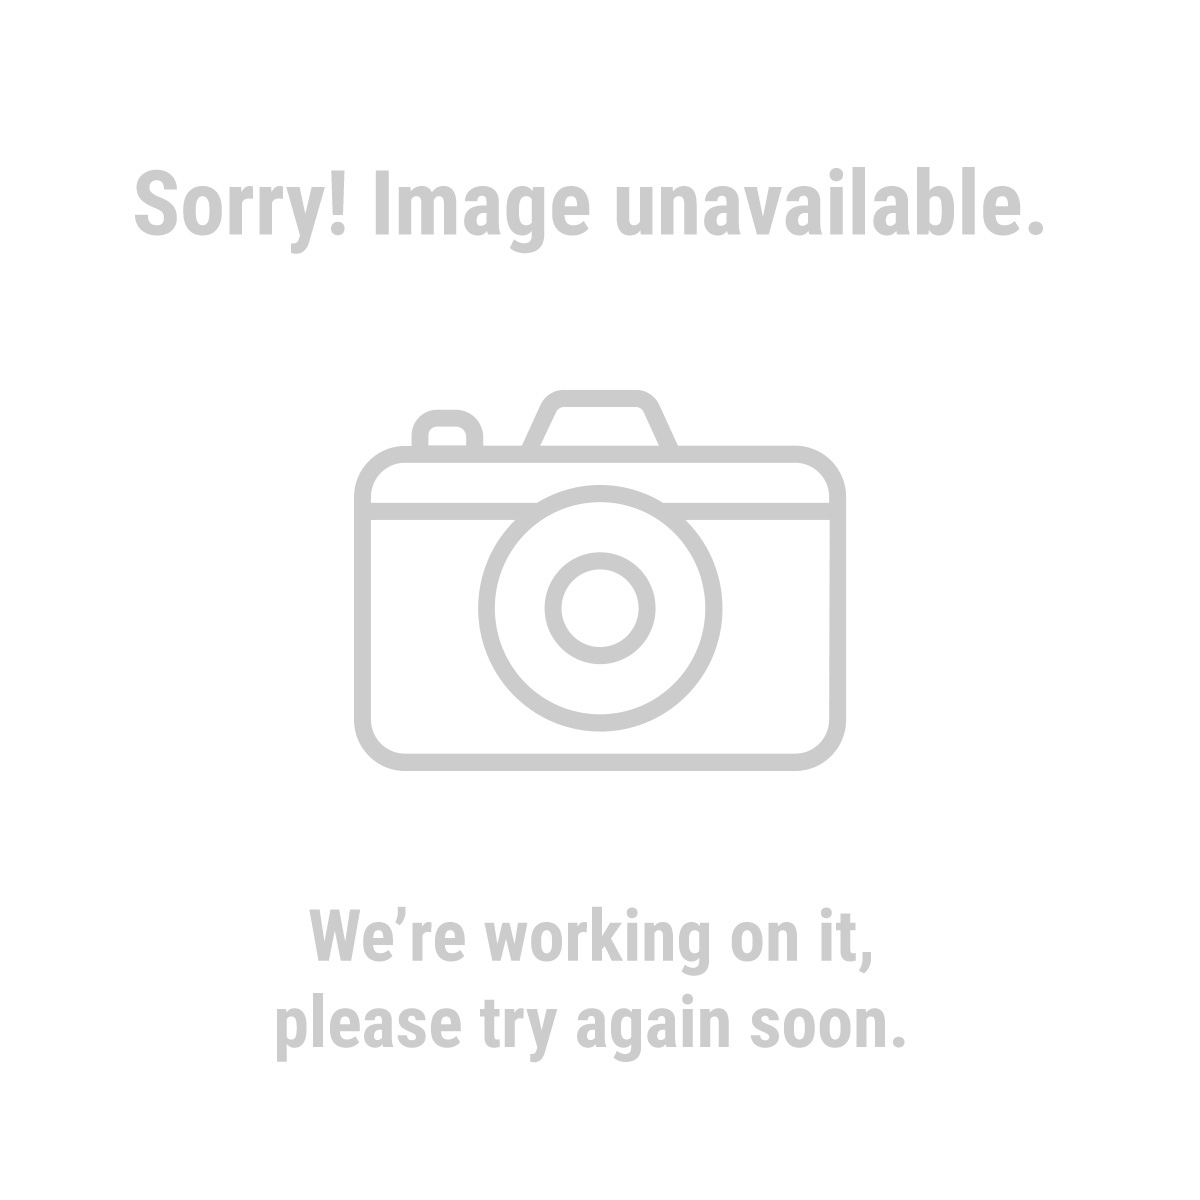 Krause & Becker 61950 4 In. Natural Bristle Paint Brush